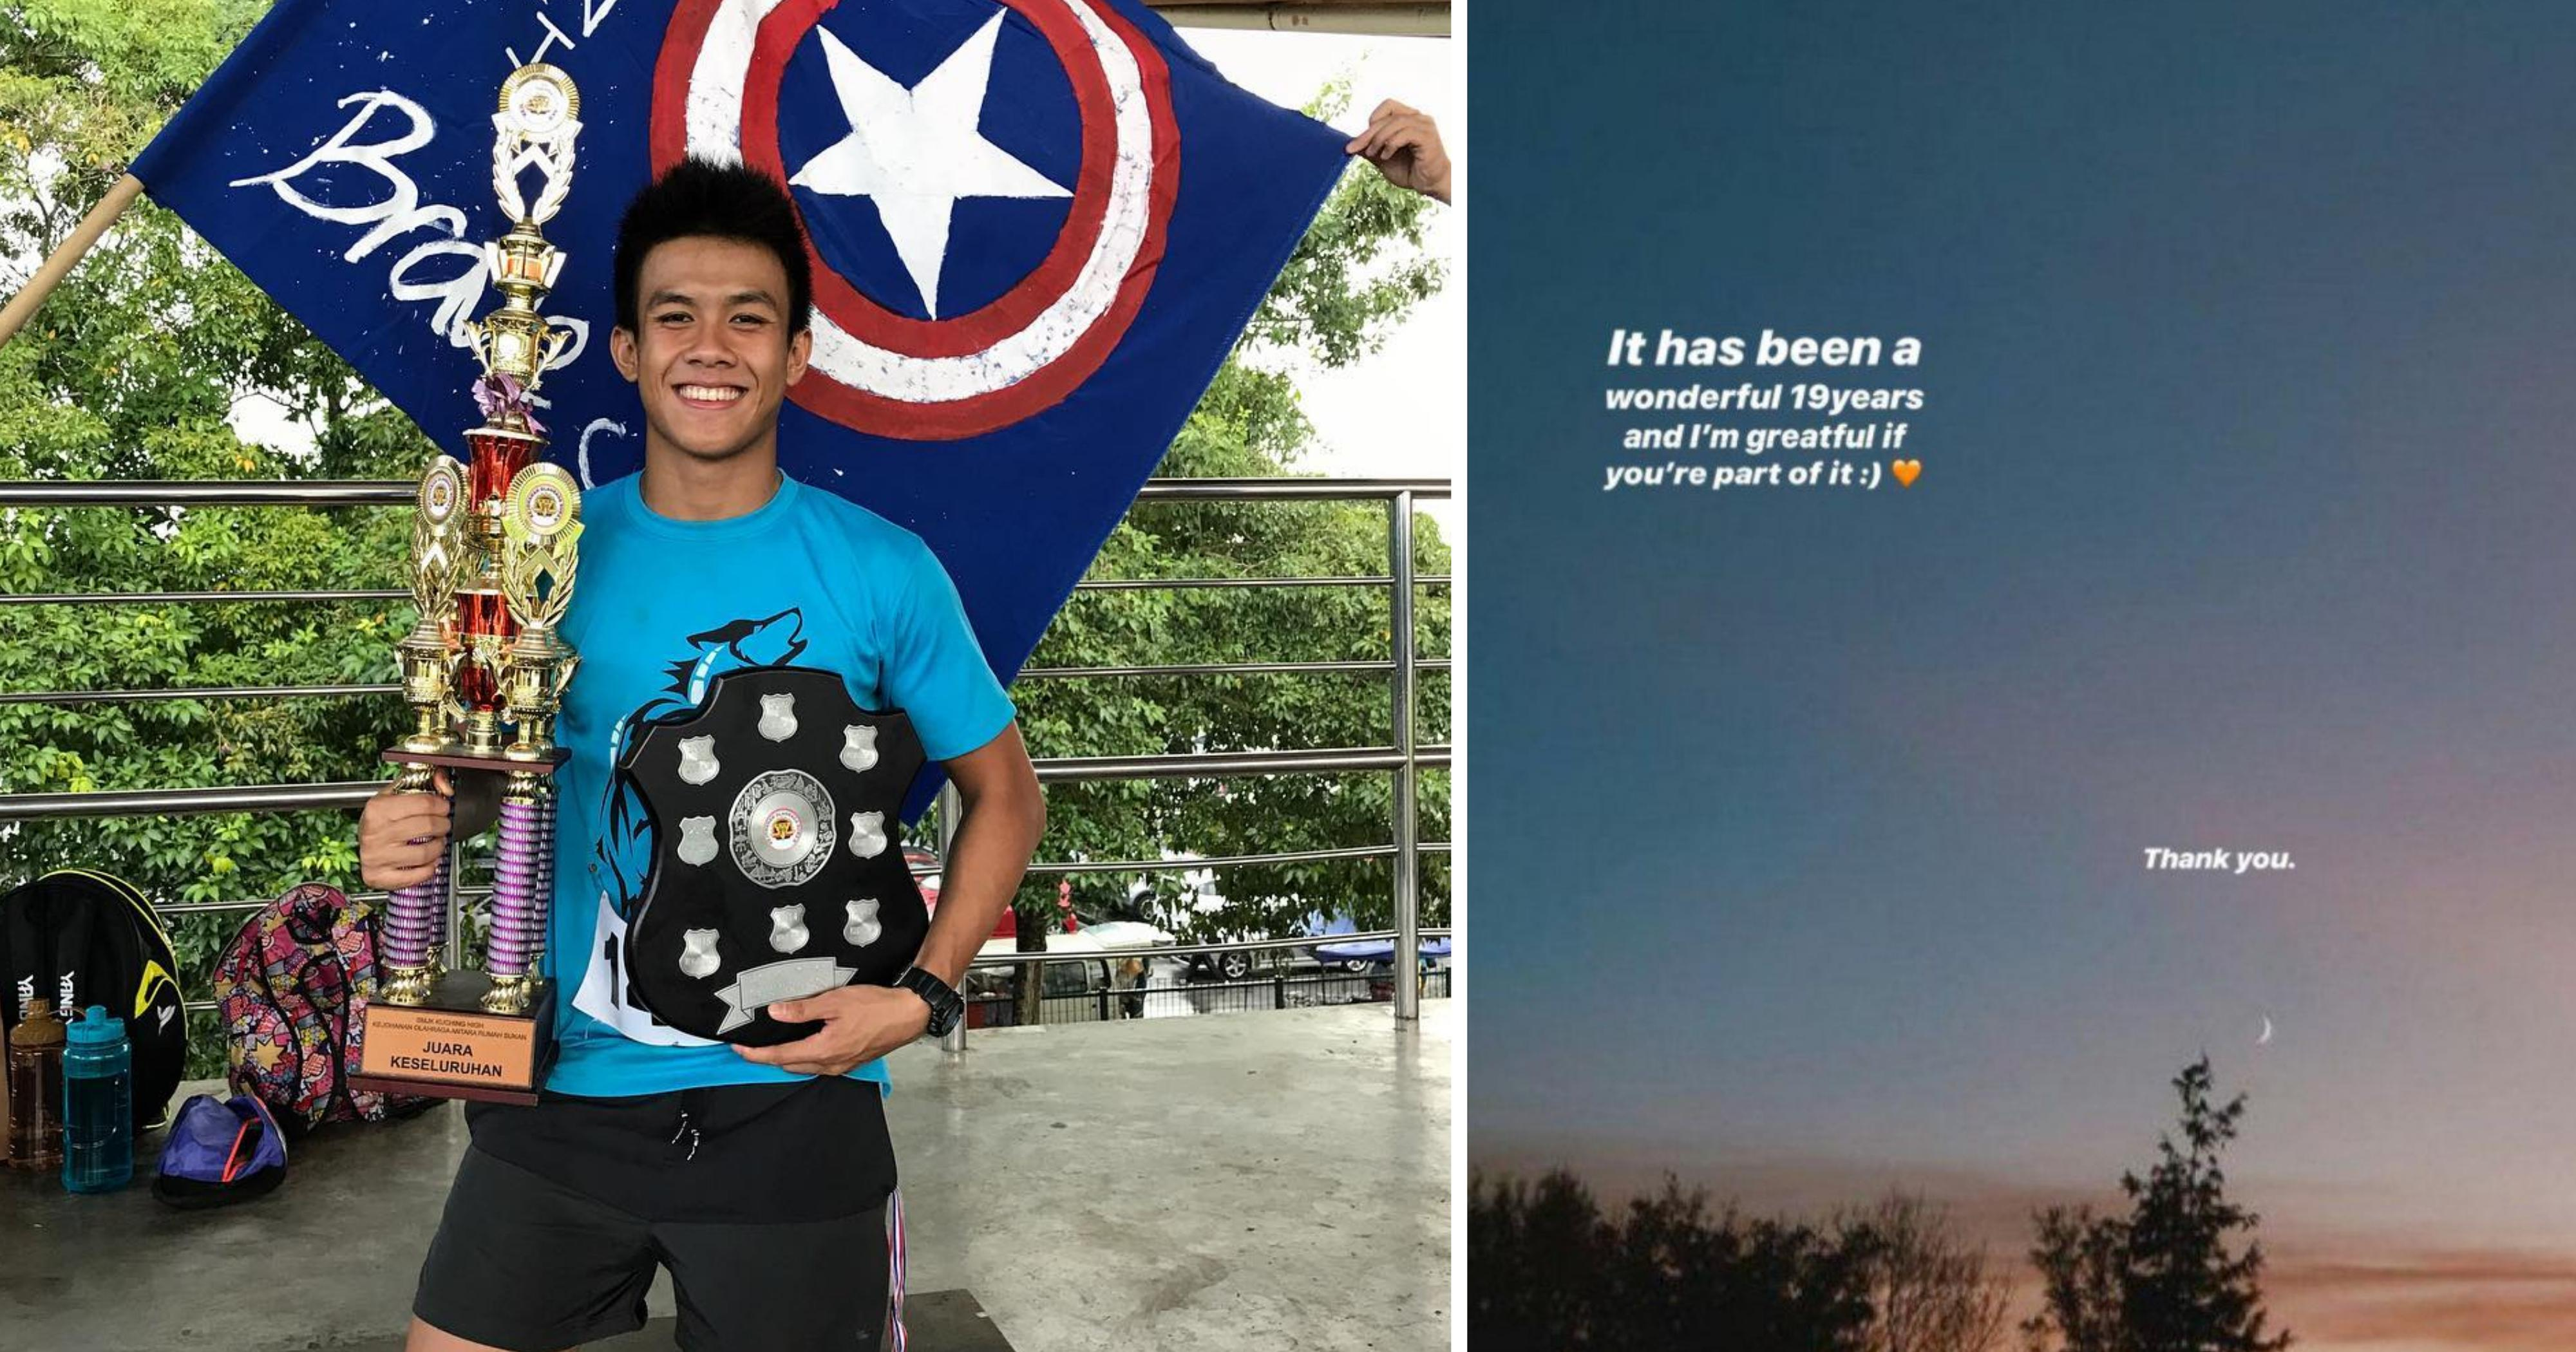 M'sian swimmer, 19, found dead at home after posting cryptic message on Instagram